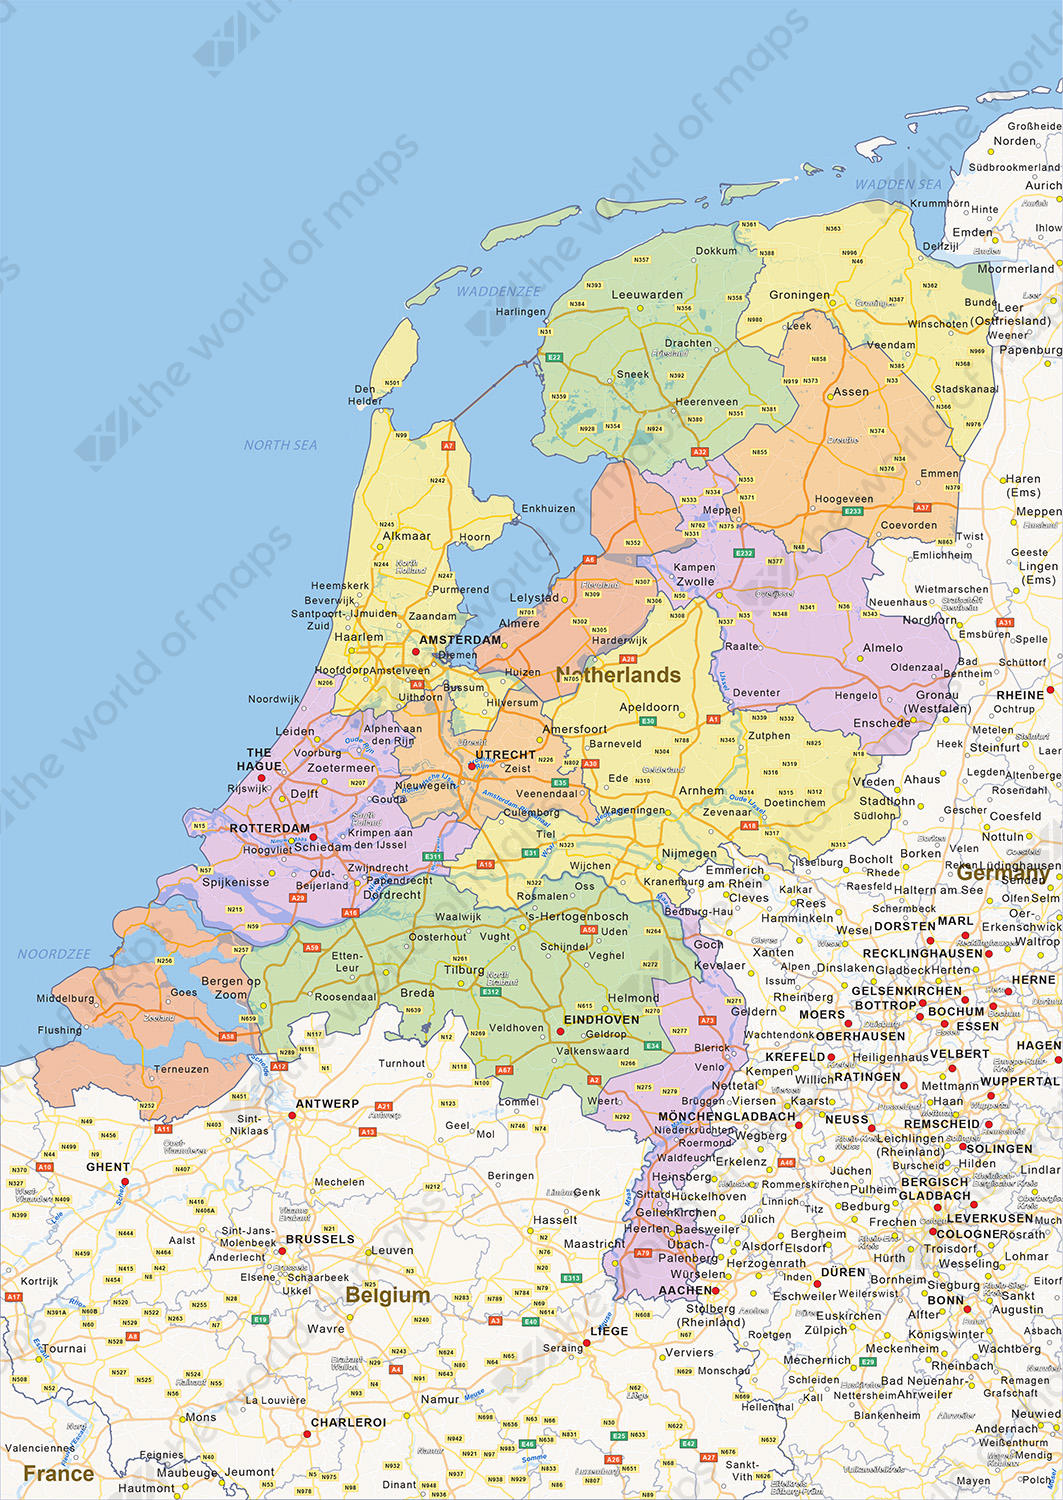 Digital Political Map Of The Netherlands 1452 The World Of Maps Com